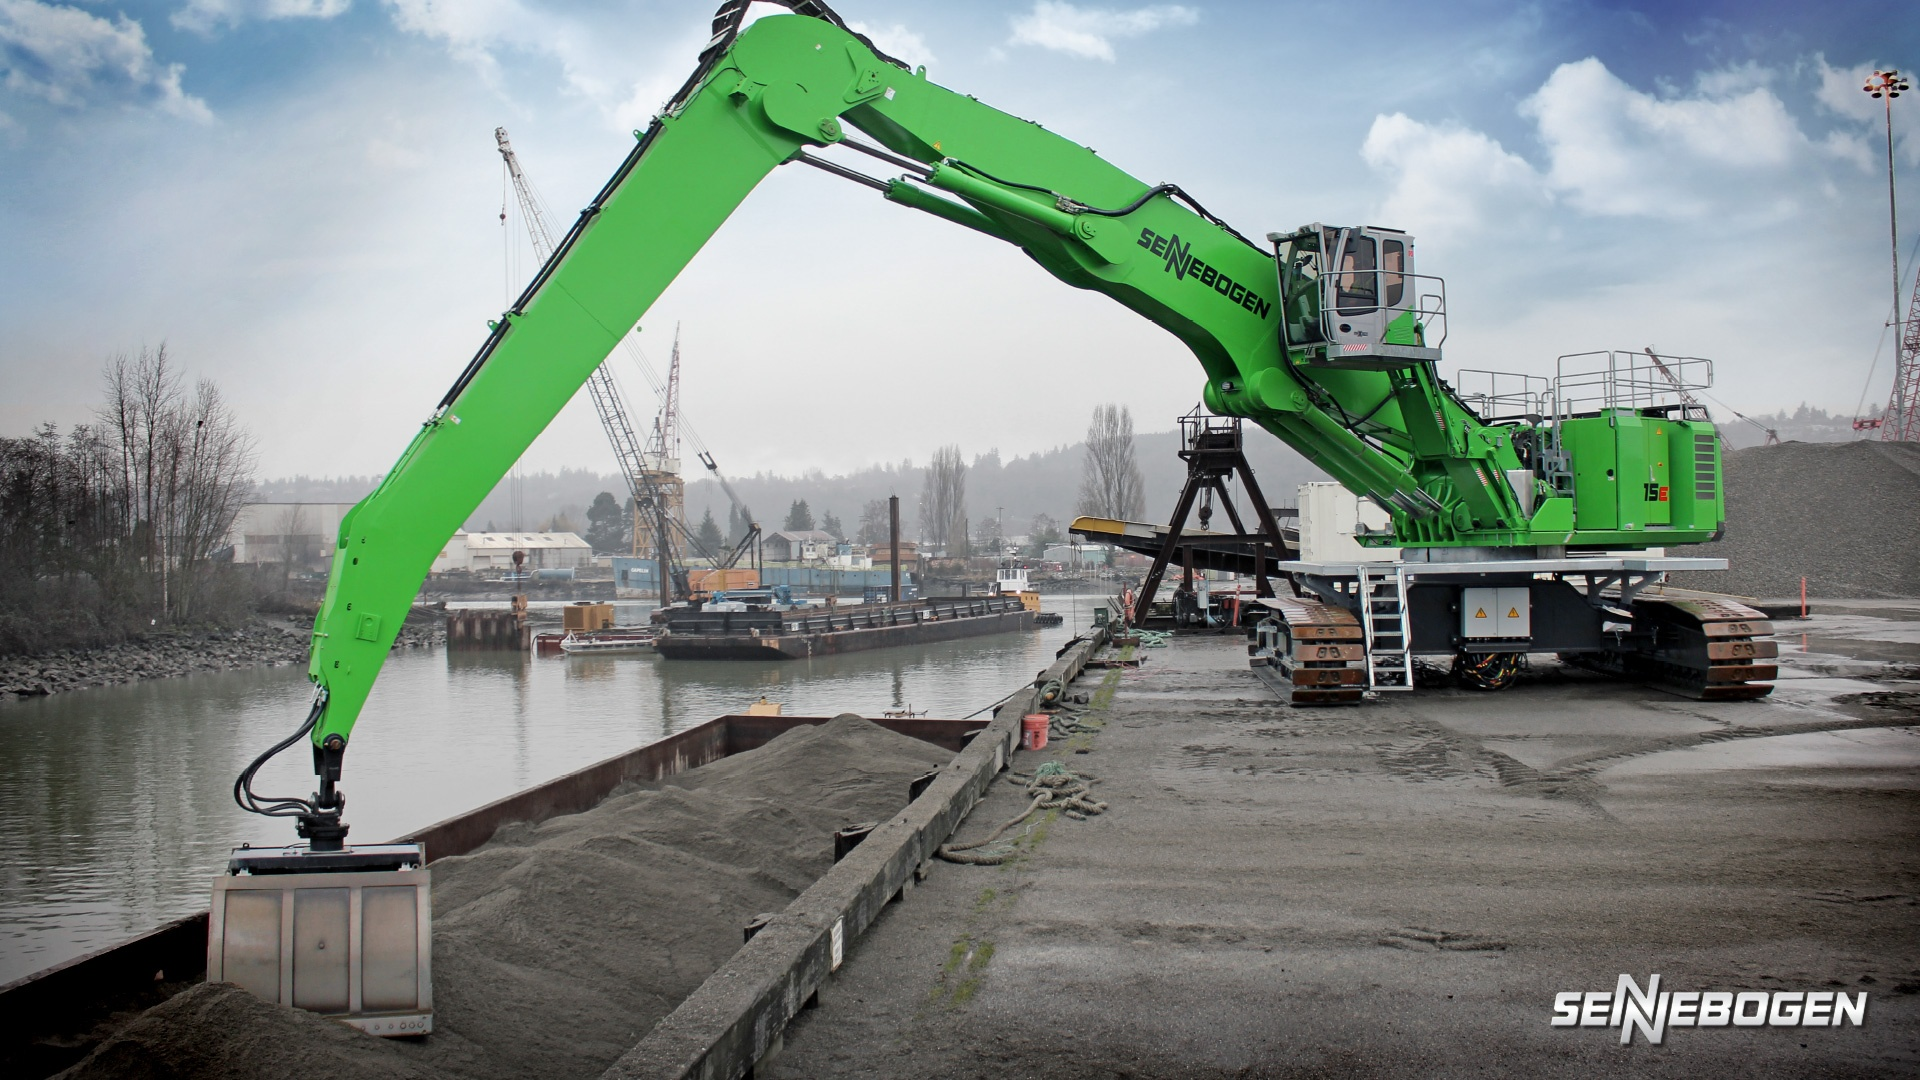 Image of a sennebogen machine operating at a port